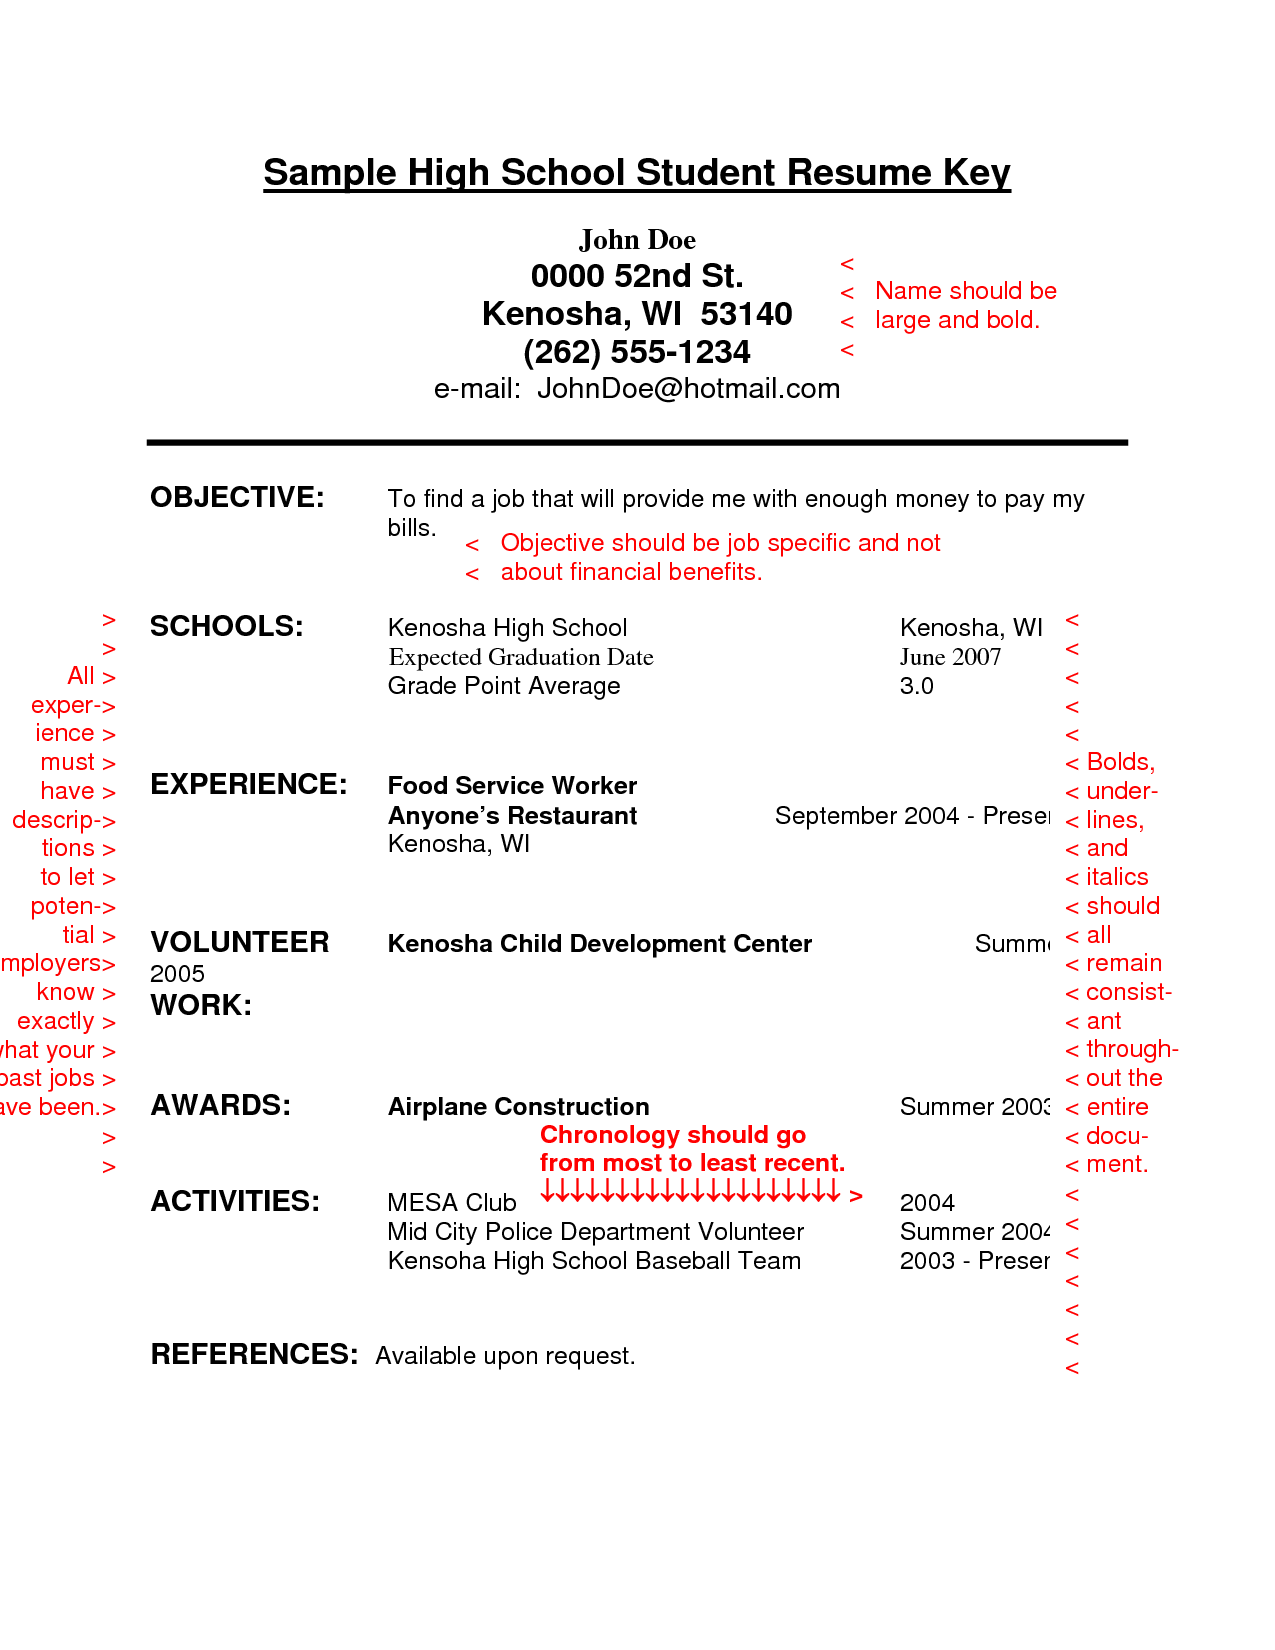 resume sample for high school students with no experience httpwwwresumecareerinforesume sample for high school students with no experience 11